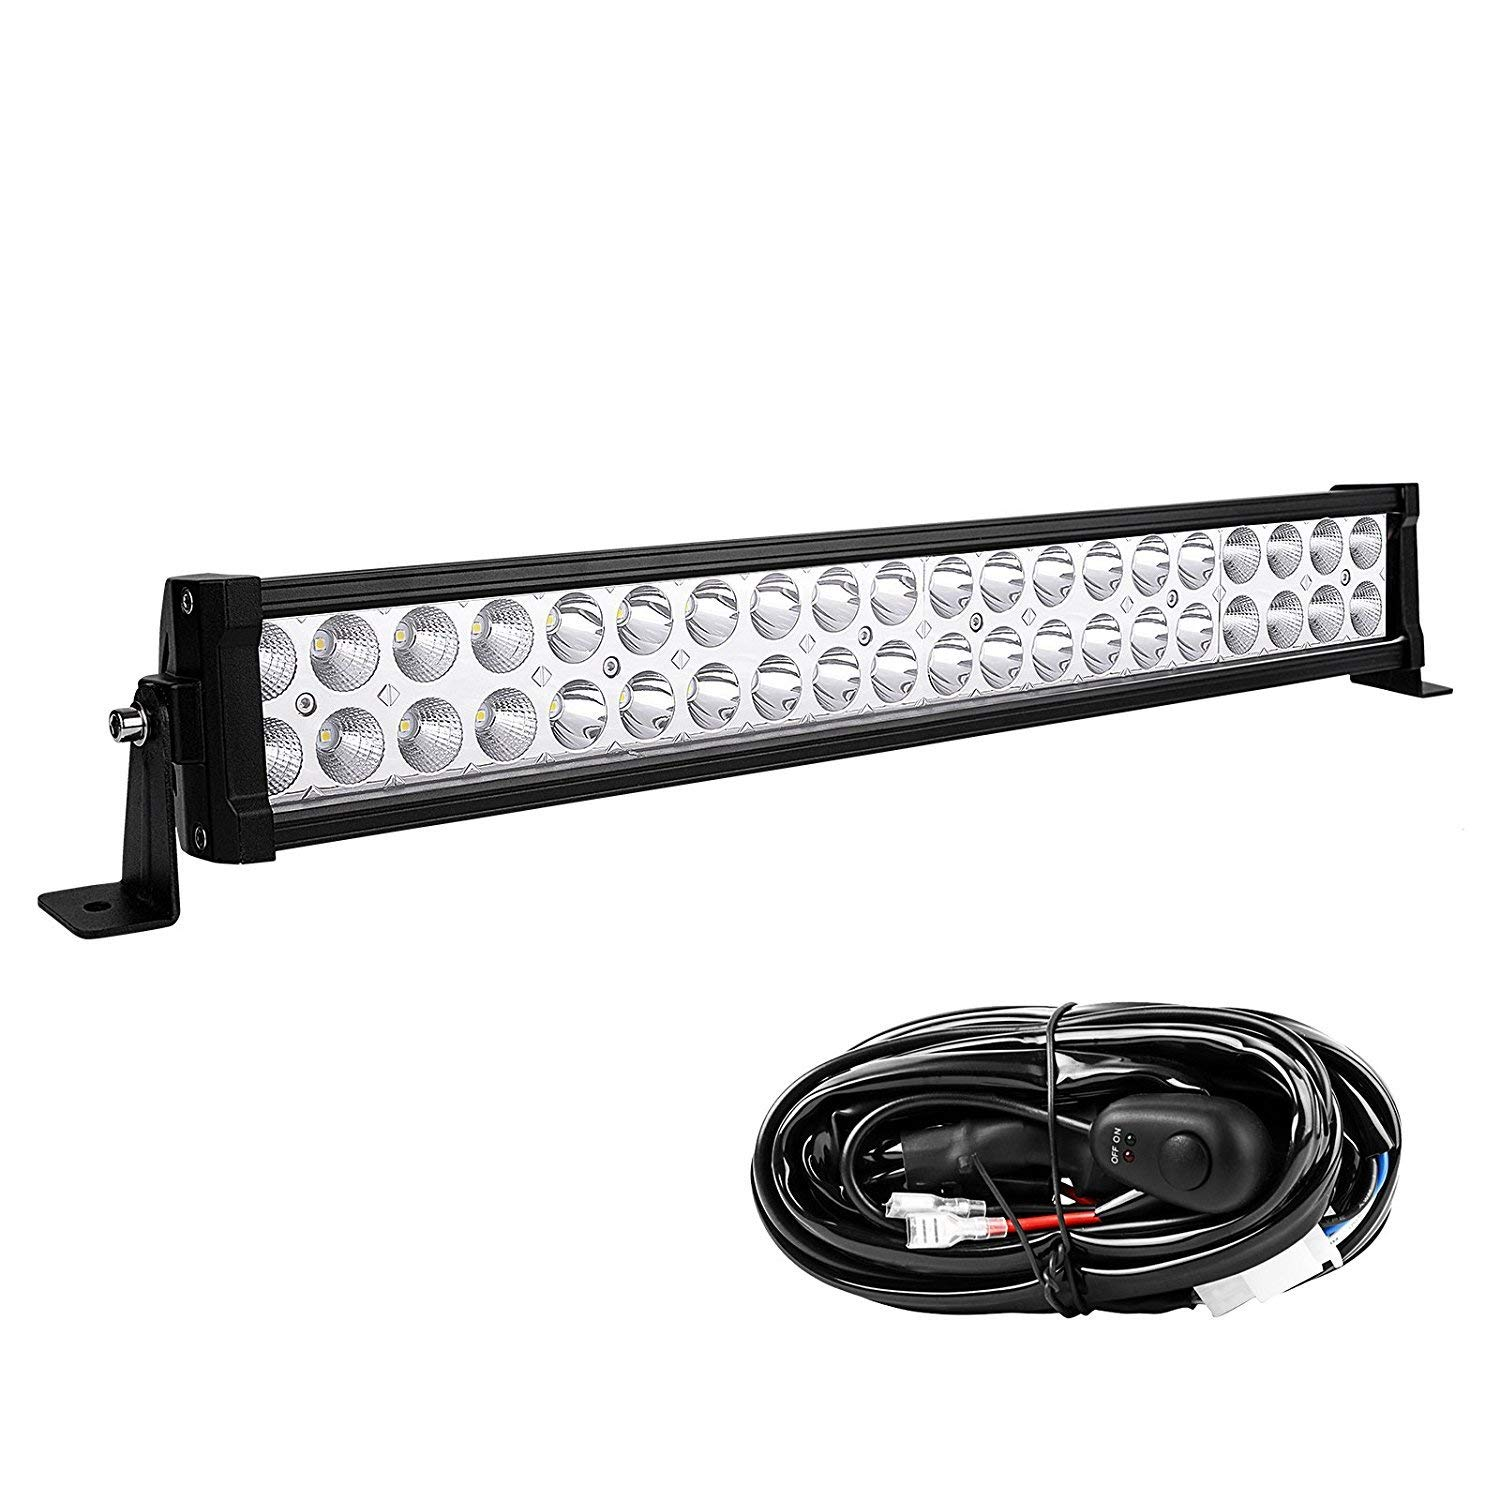 YITAMOTOR 24 Inch Light Bar Offroad Spot Flood Combo Led Bar Waterproof  Dual Row LED Work Light with Wiring Harness compatible for Truck, 4X4, ATV,  Boat, ...